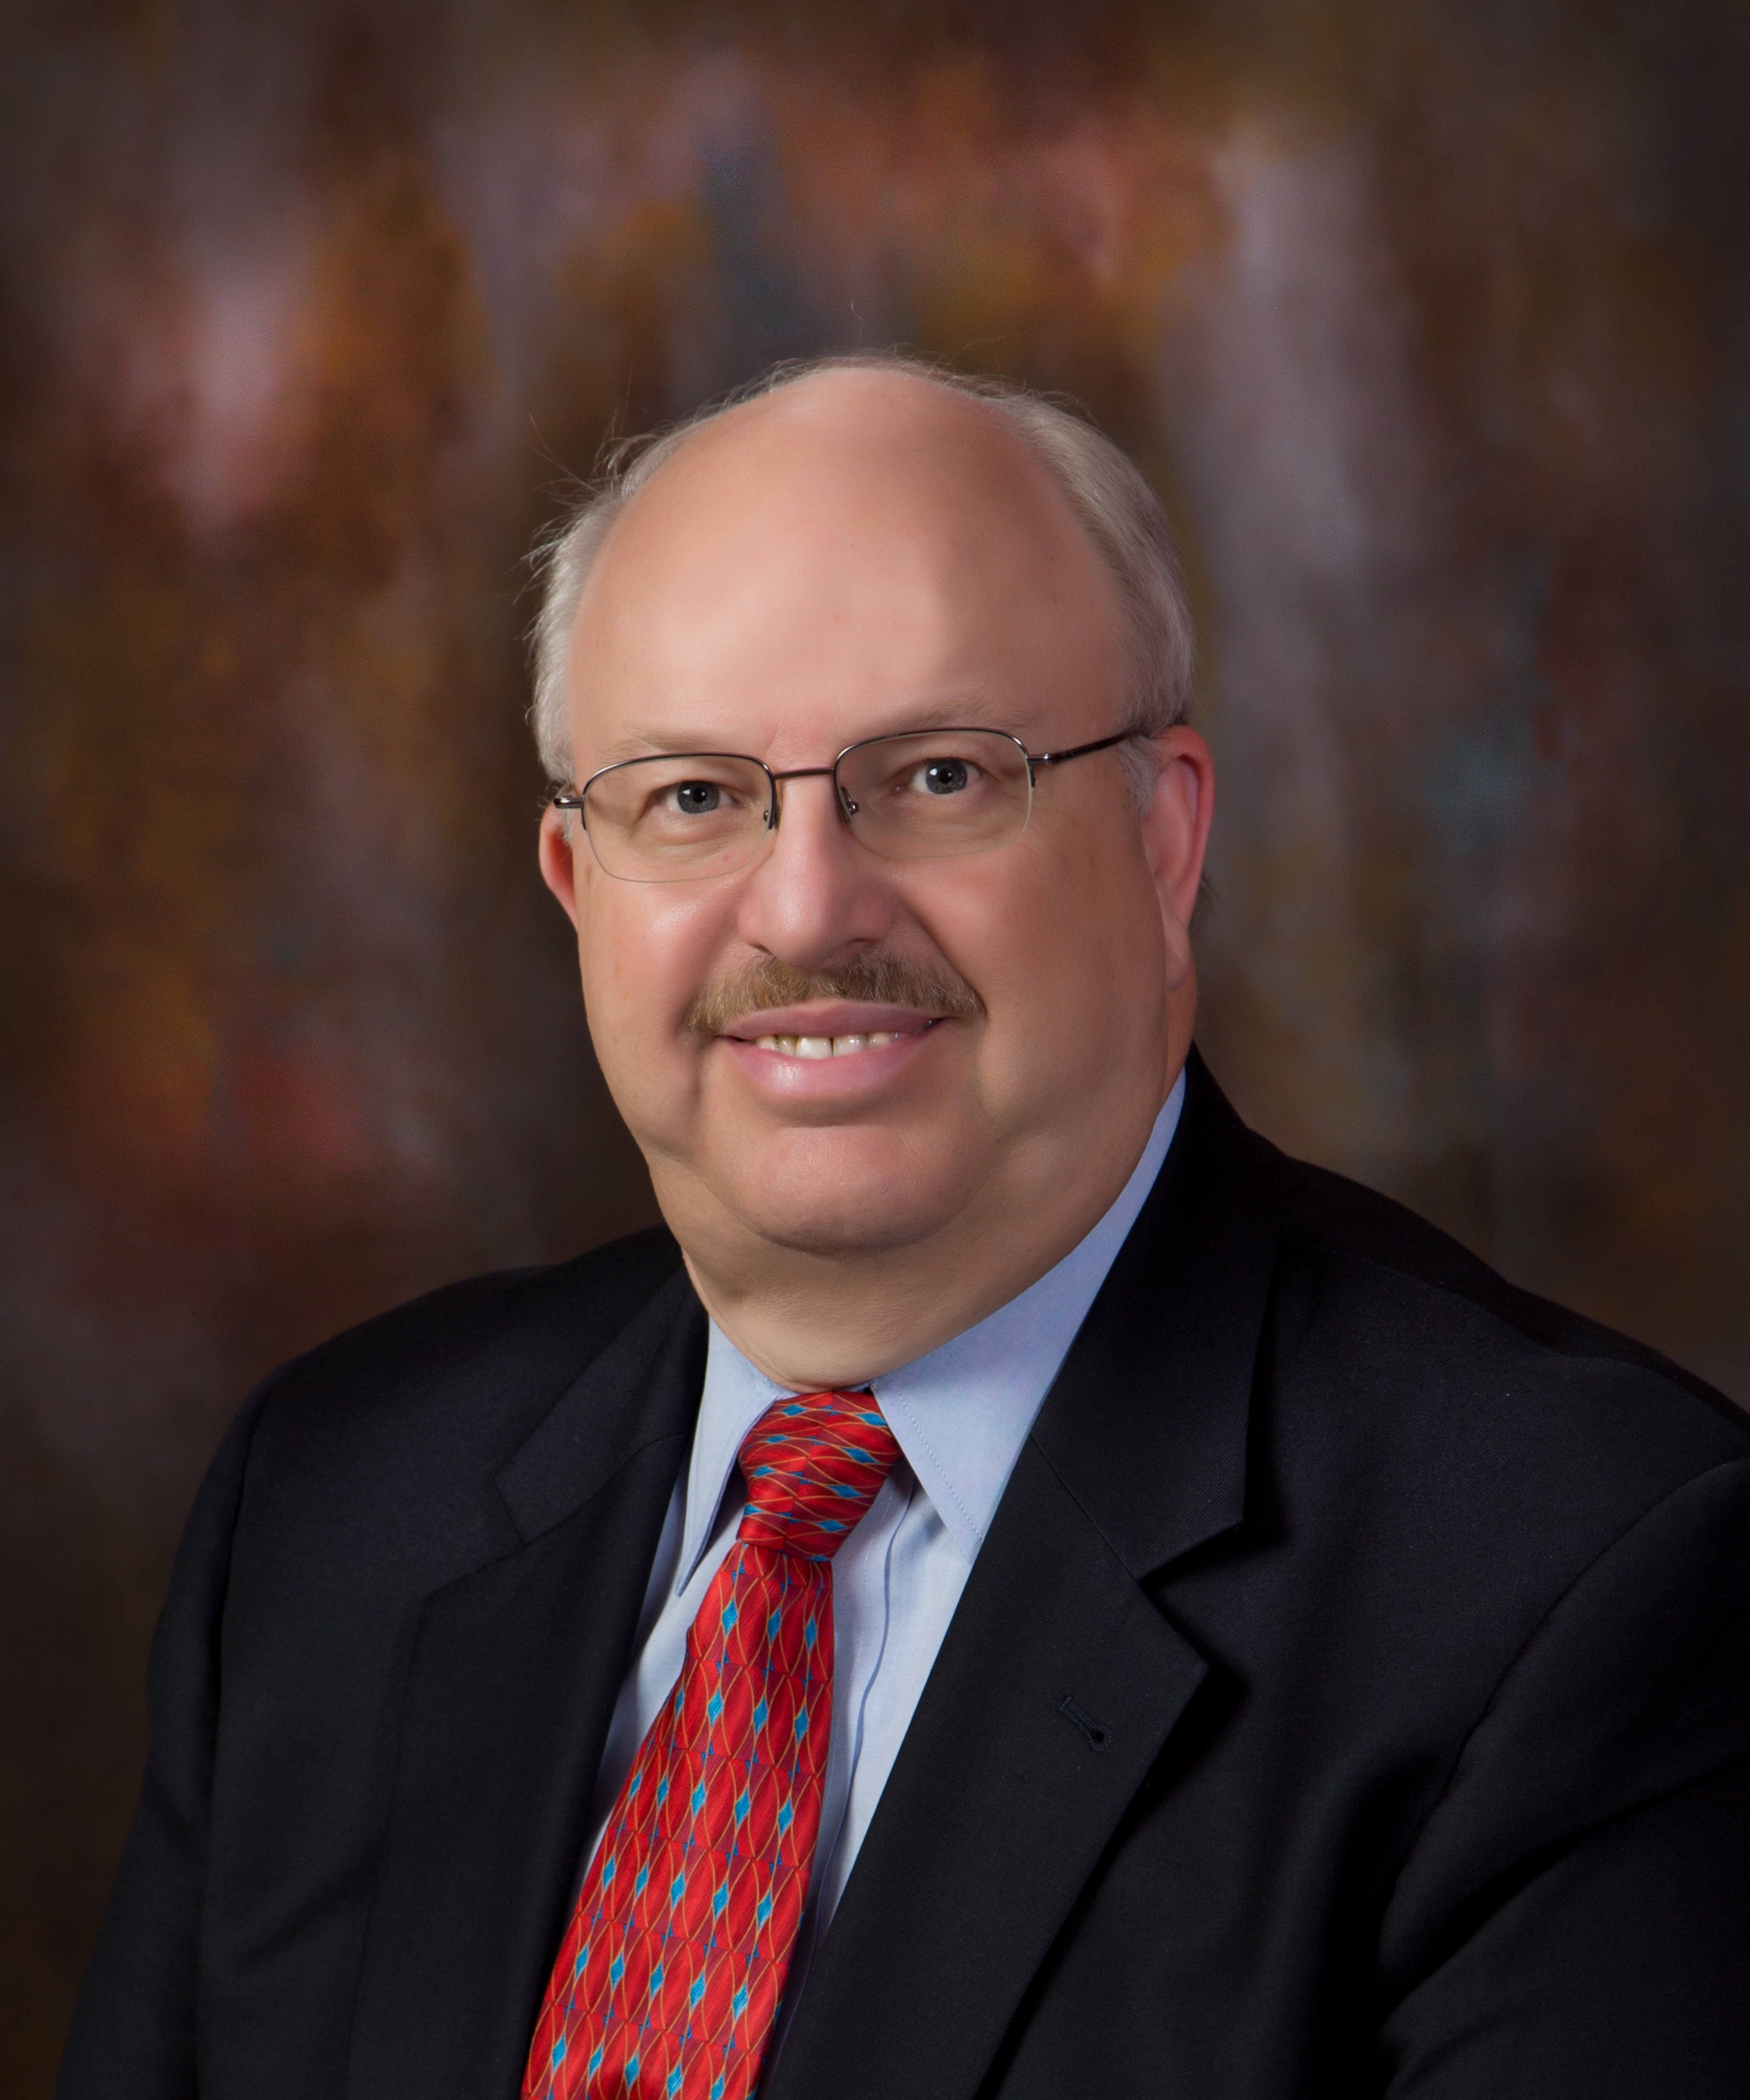 James P. Huether, CPA (inactive)